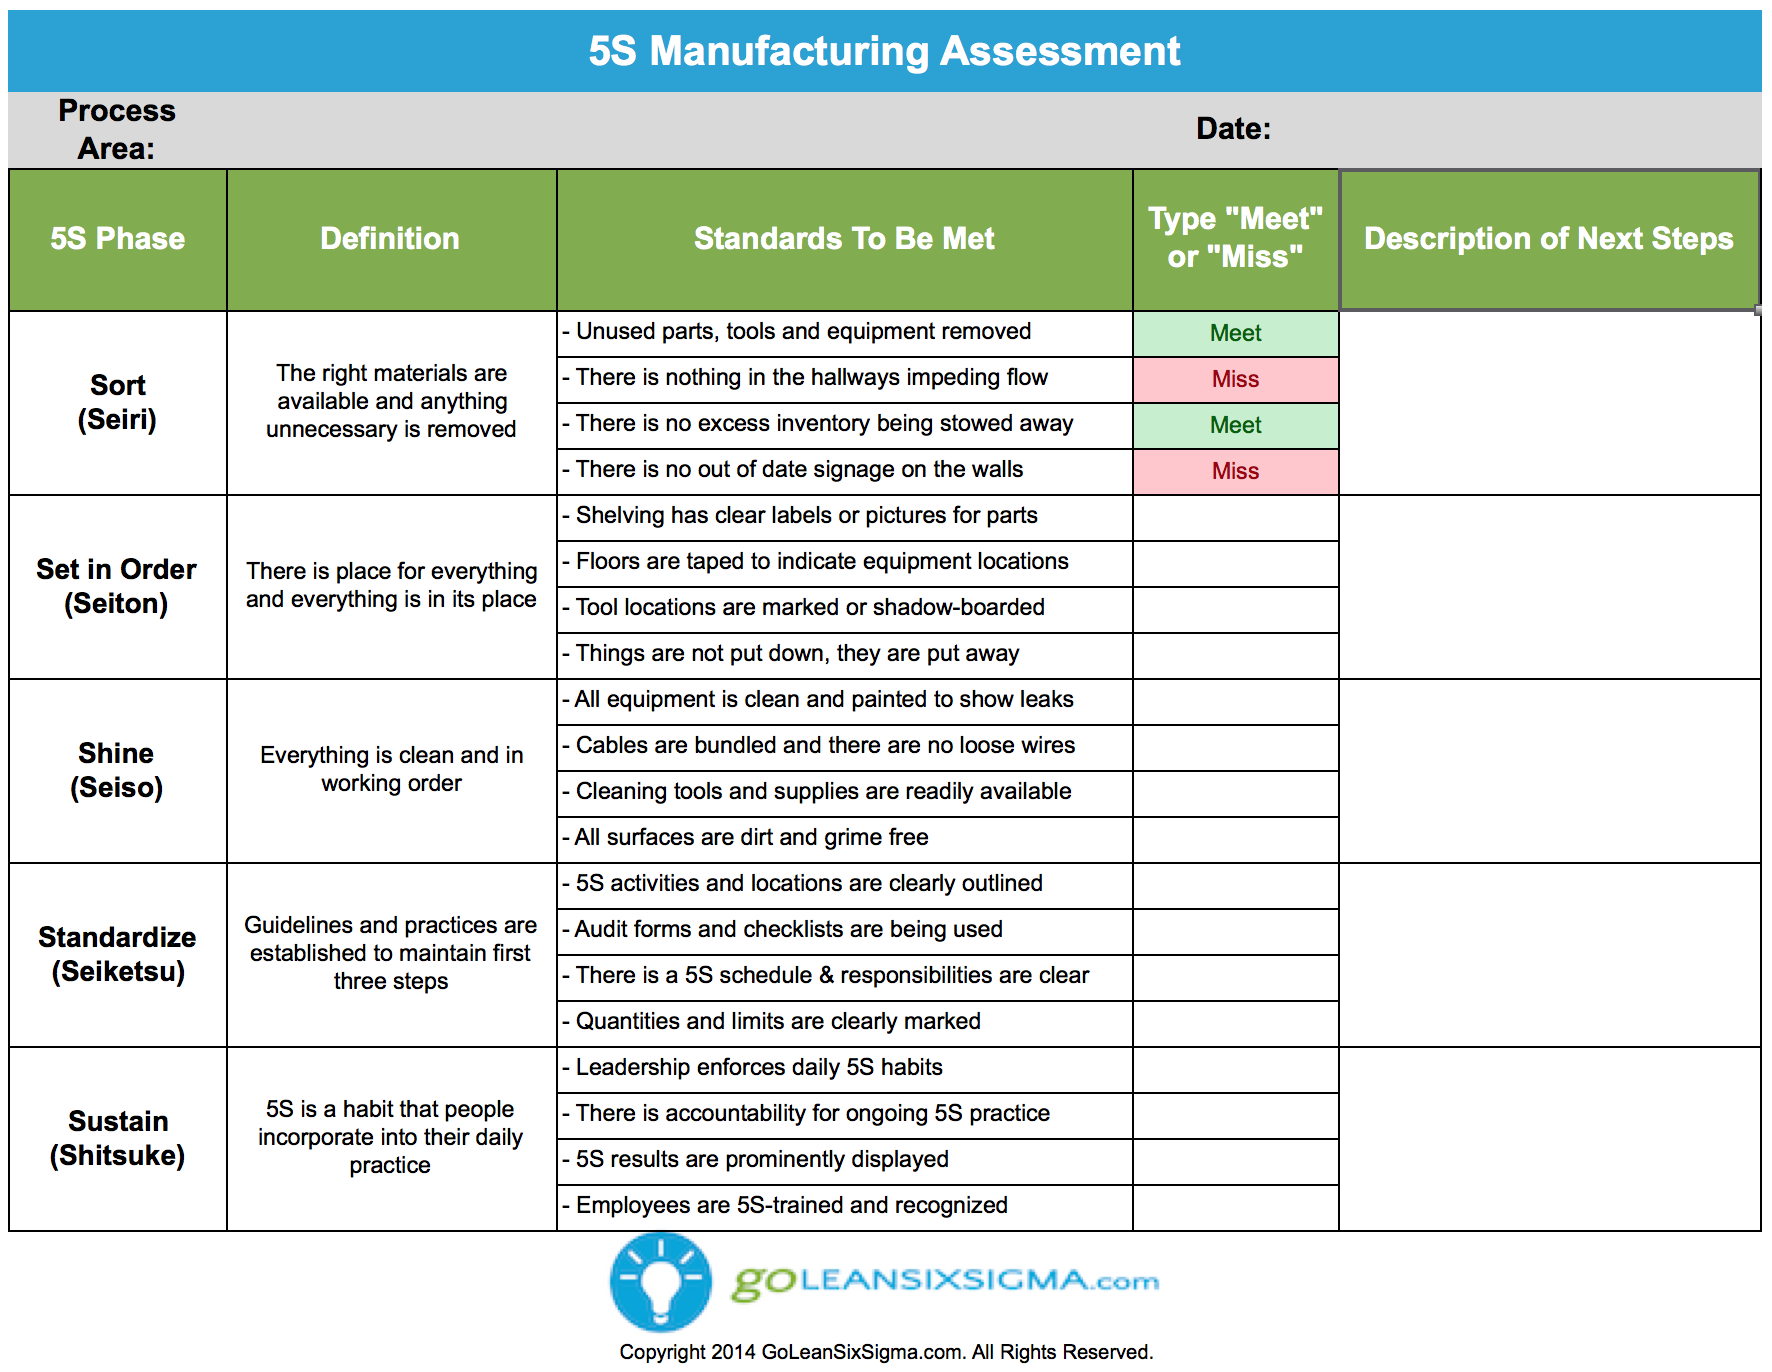 Download free 5s manufacturing assessment template for Planning tools